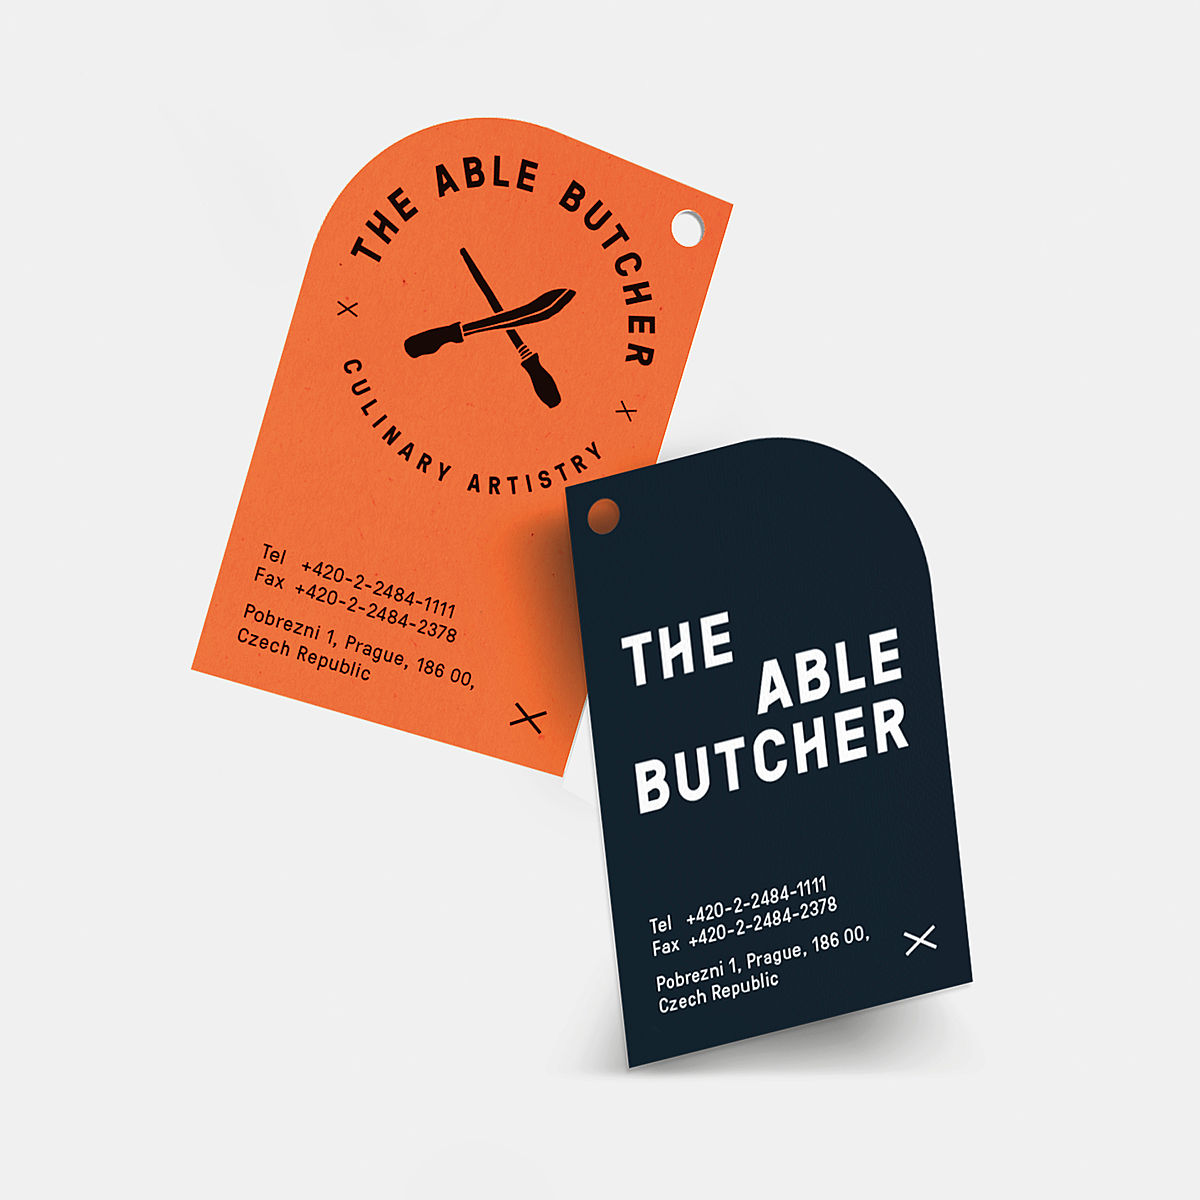 The Able Butcher